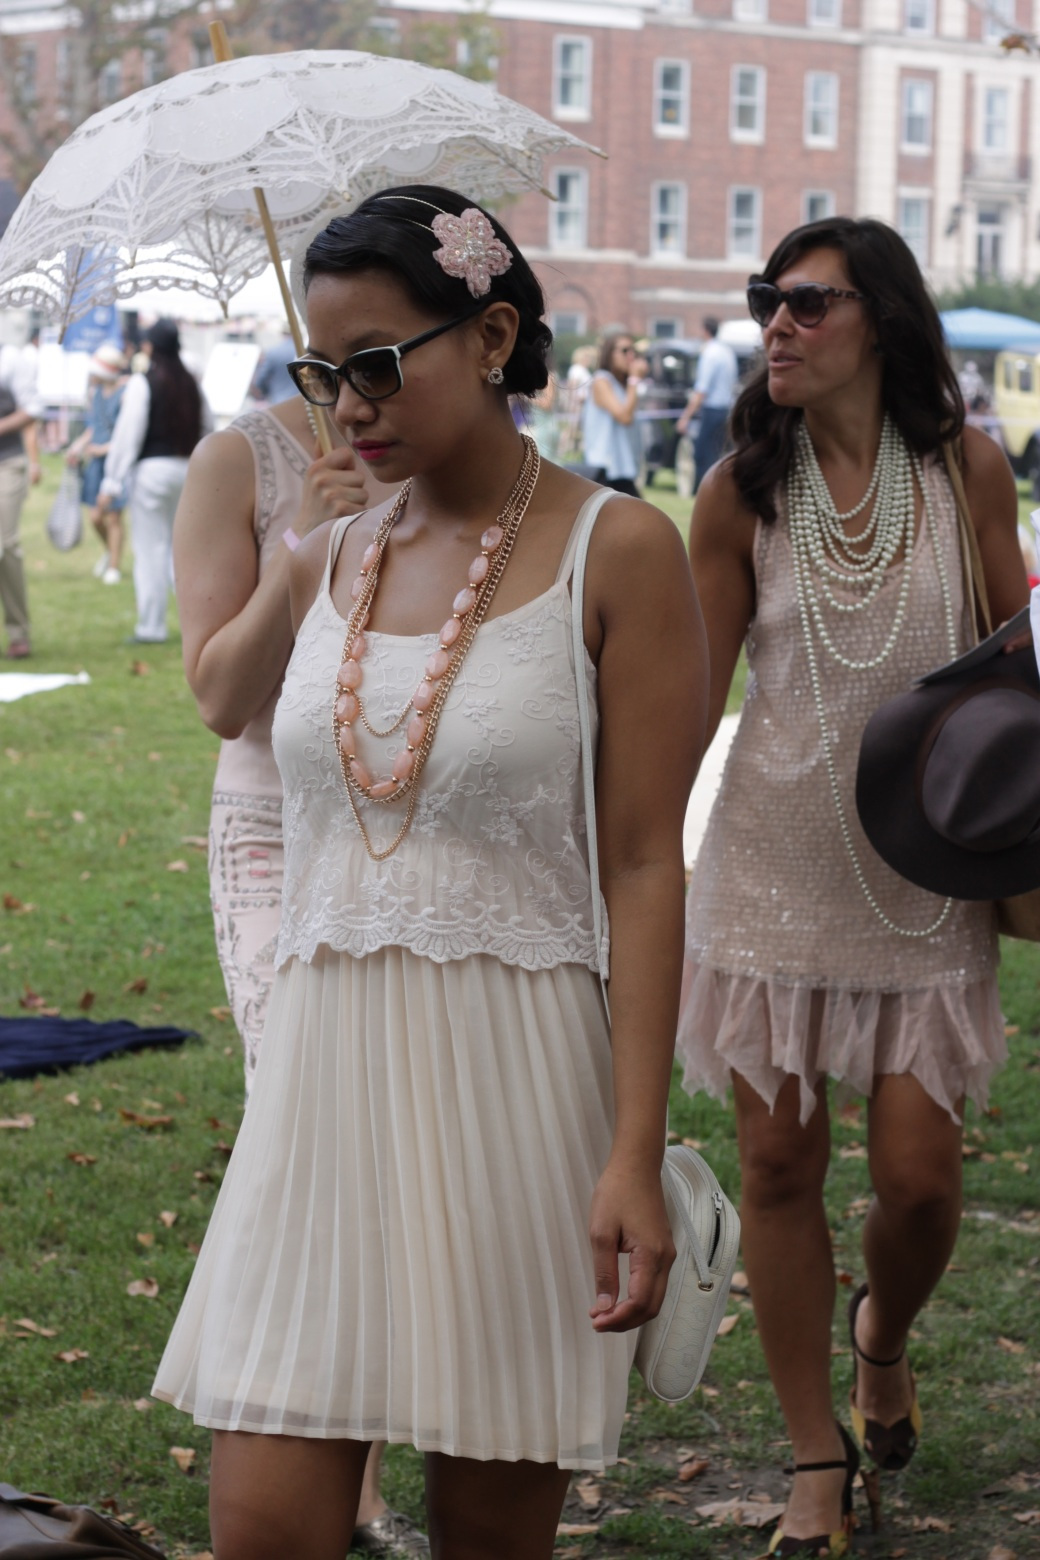 new york city governors island jazz age lawn party august 17 2014 25